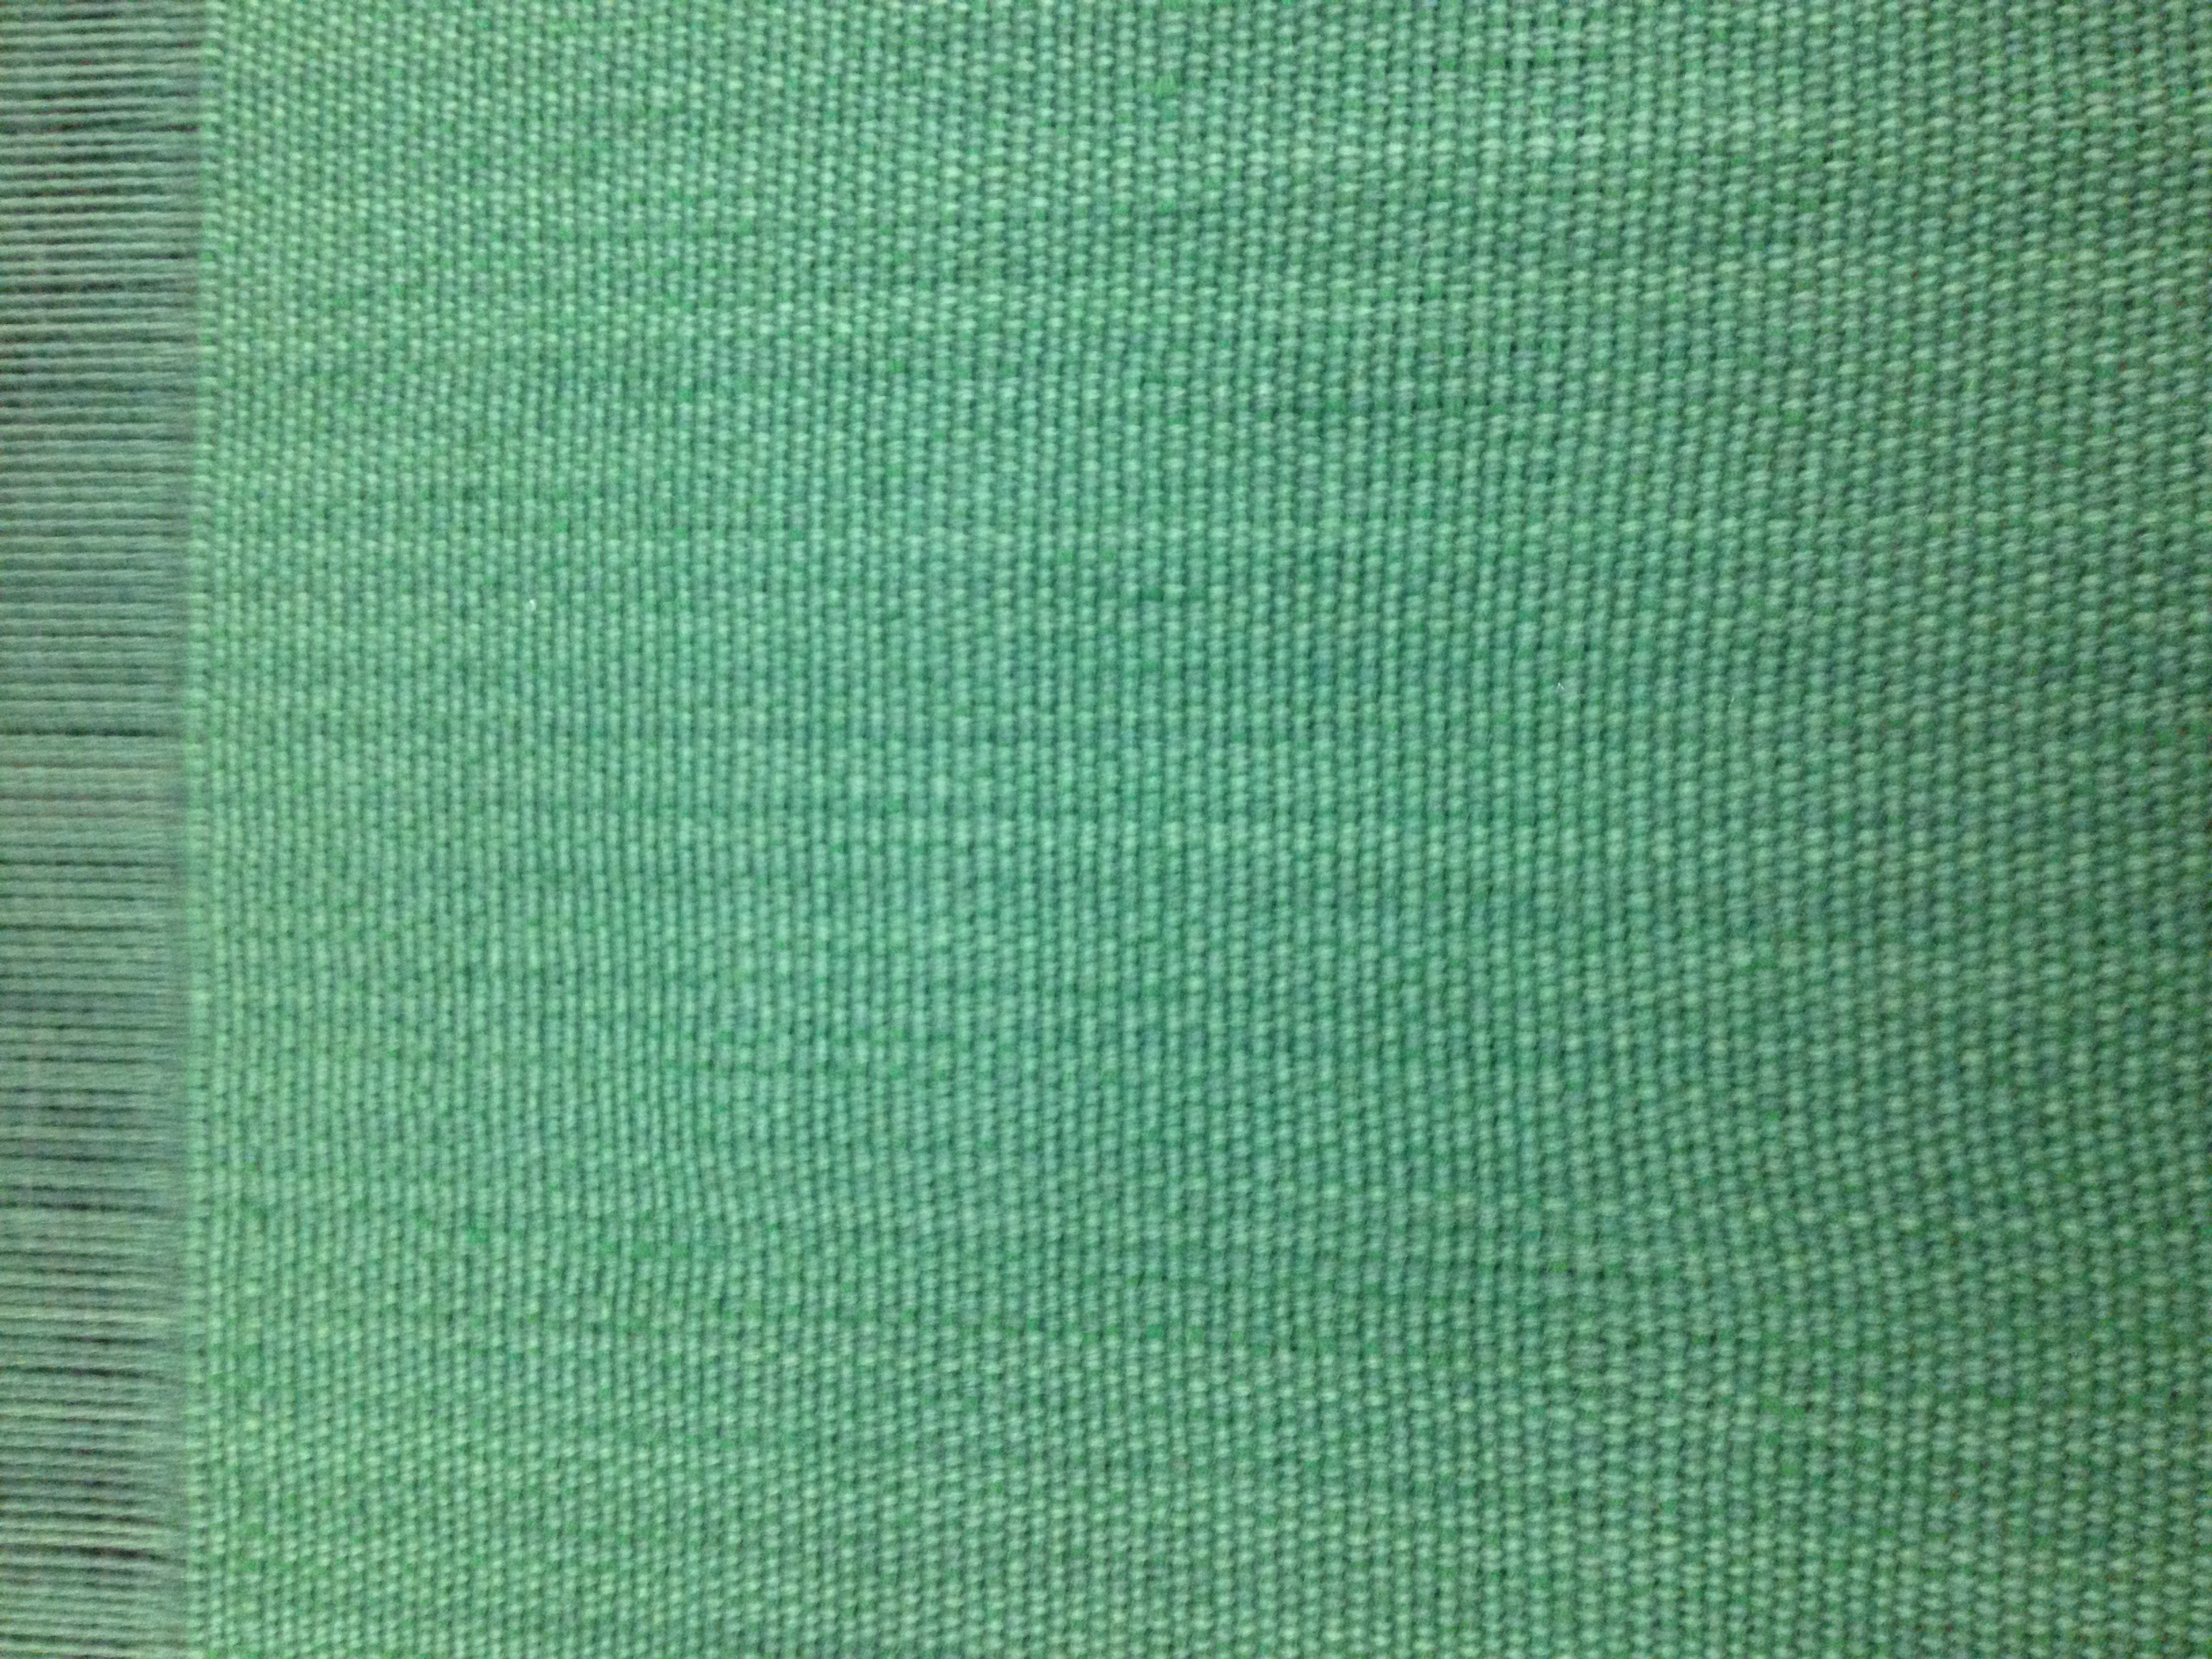 High quality close up of the fabric for Domestic Sofa In Green Handwoven Fabric